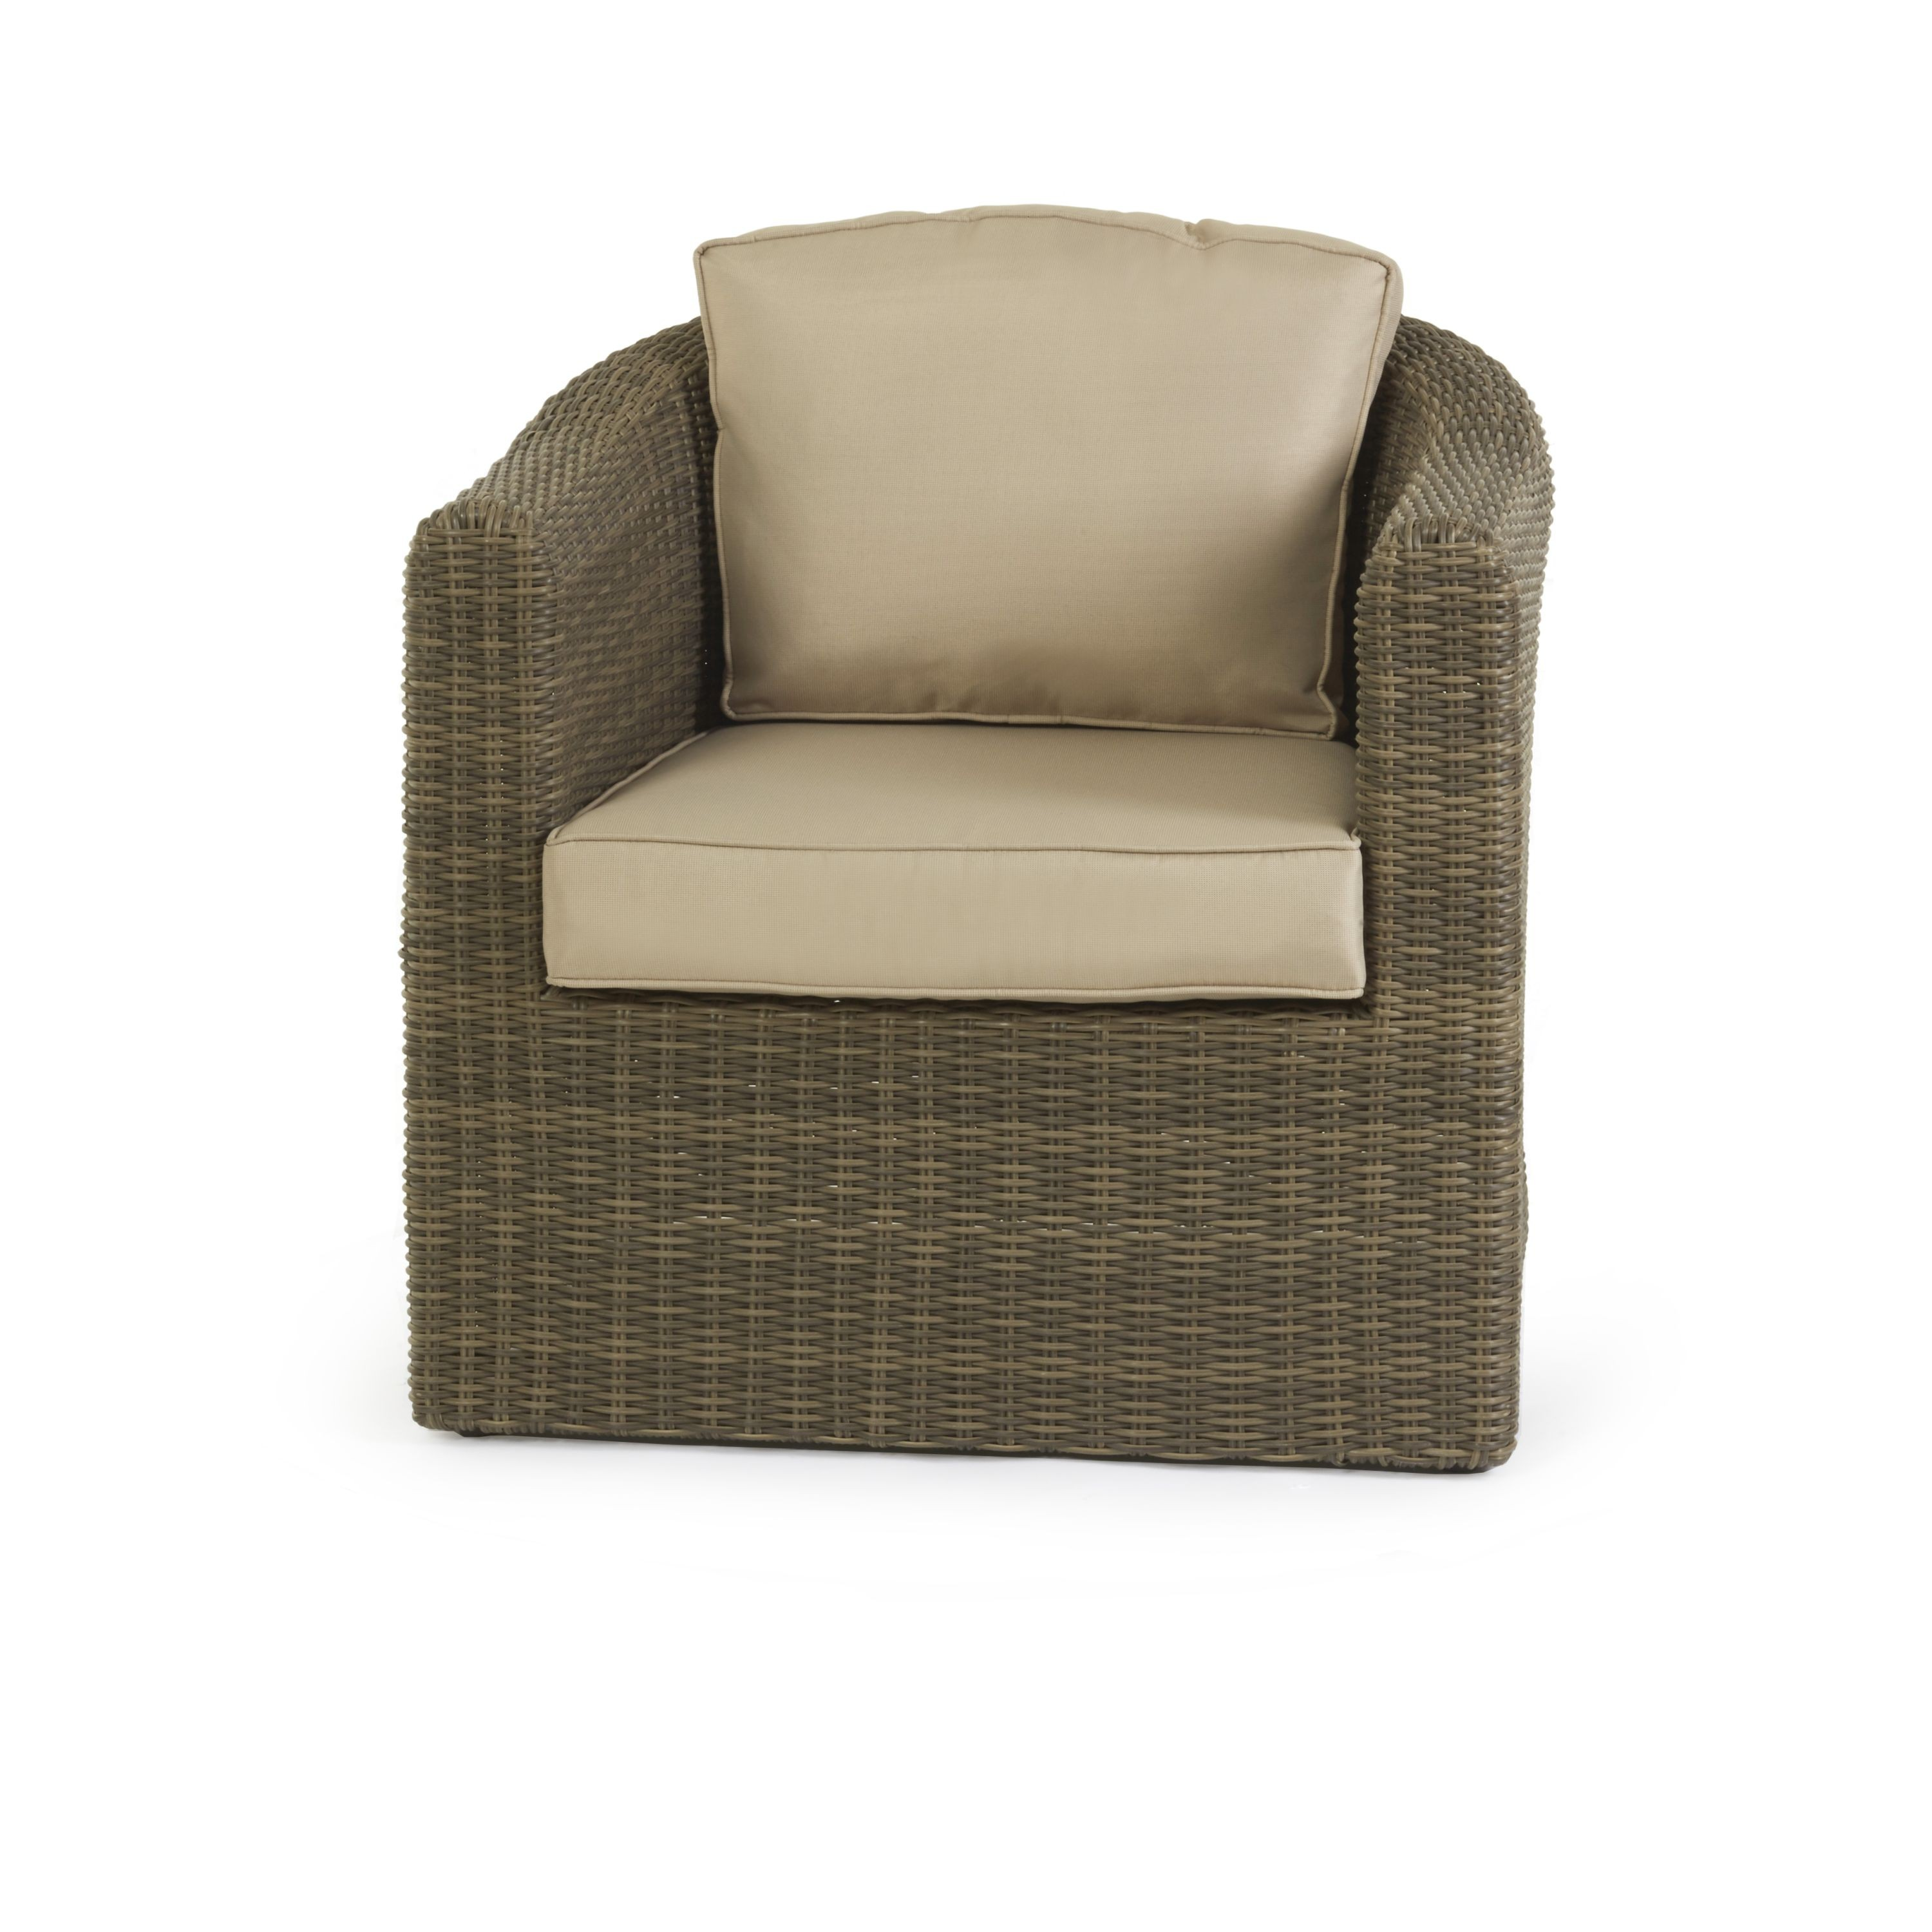 Maze Rattan Winchester large armchair